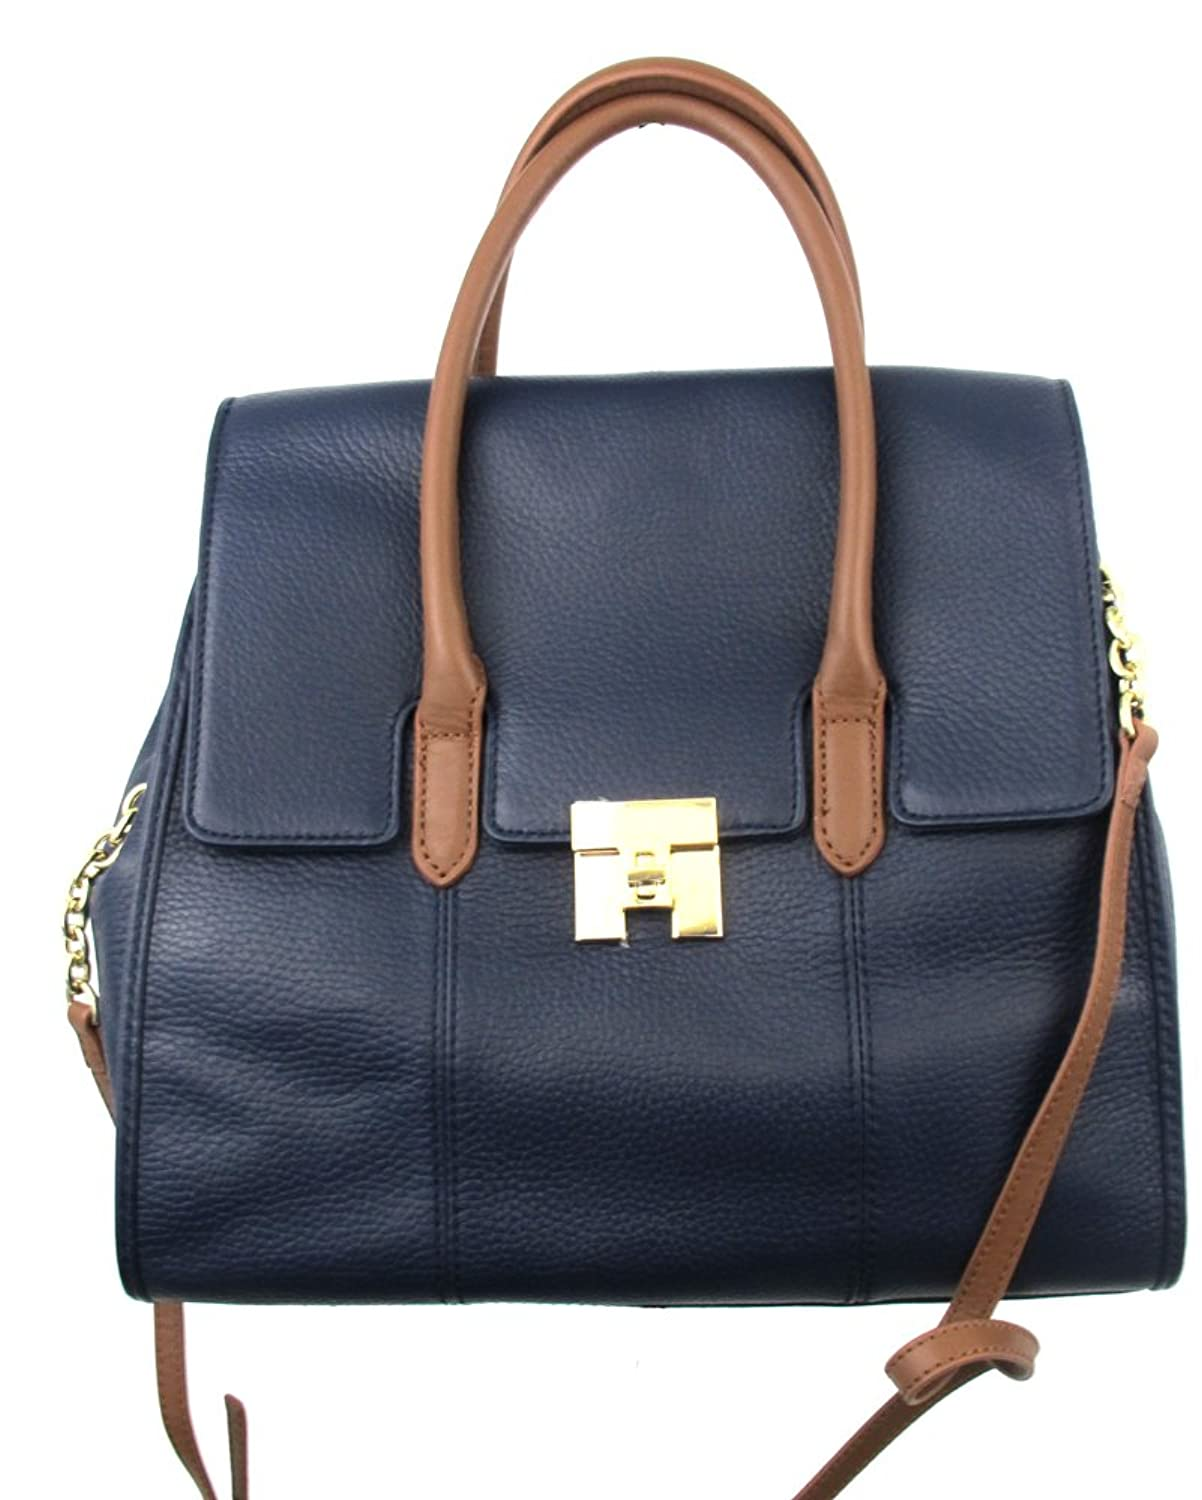 Tommy Hilfiger Top Handle Satchel in Blue